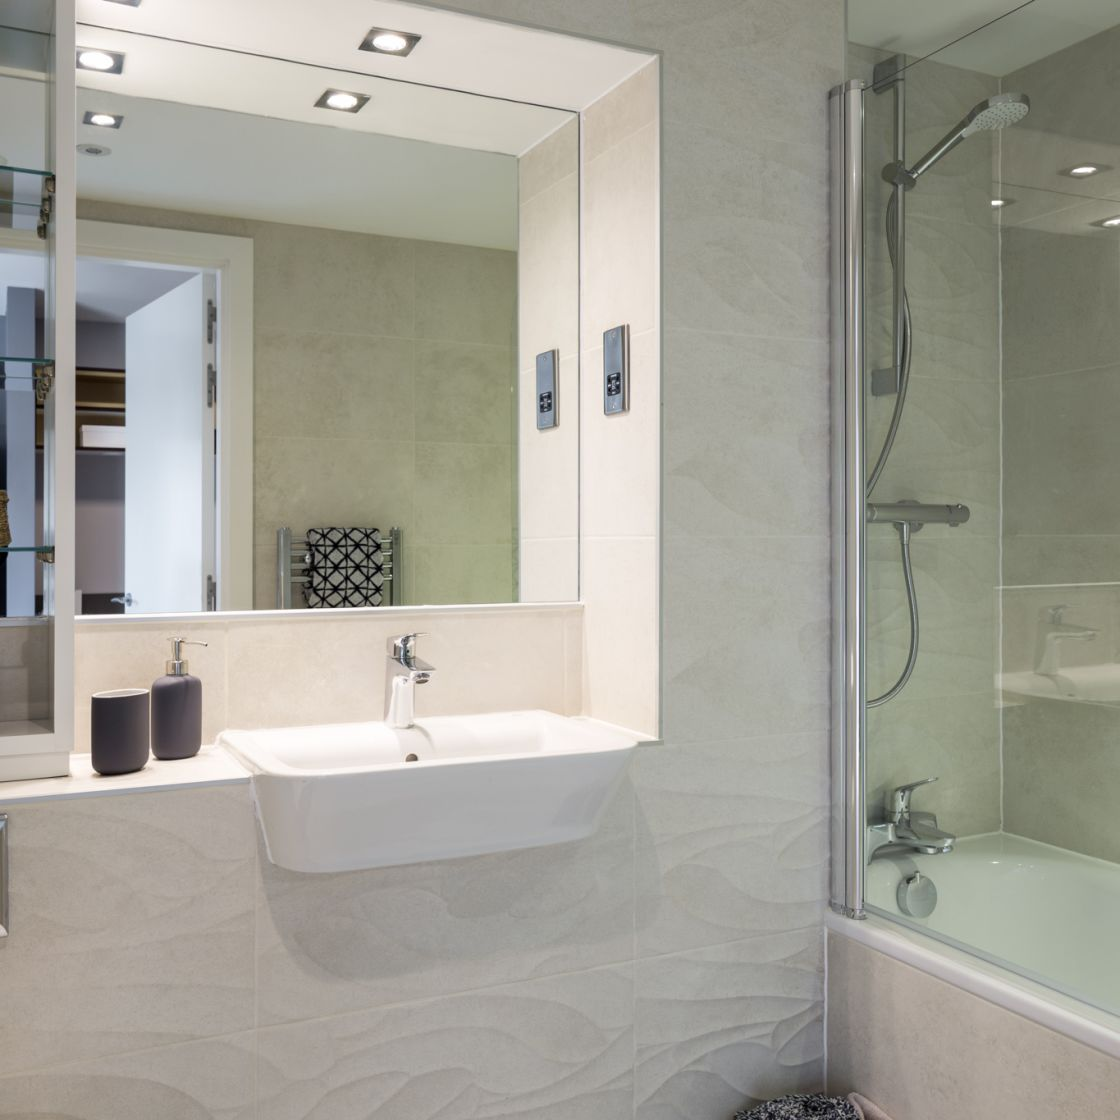 Grande Student Apartment in Leeds with En-suite Bath and Shower. IconInc, The Glassworks